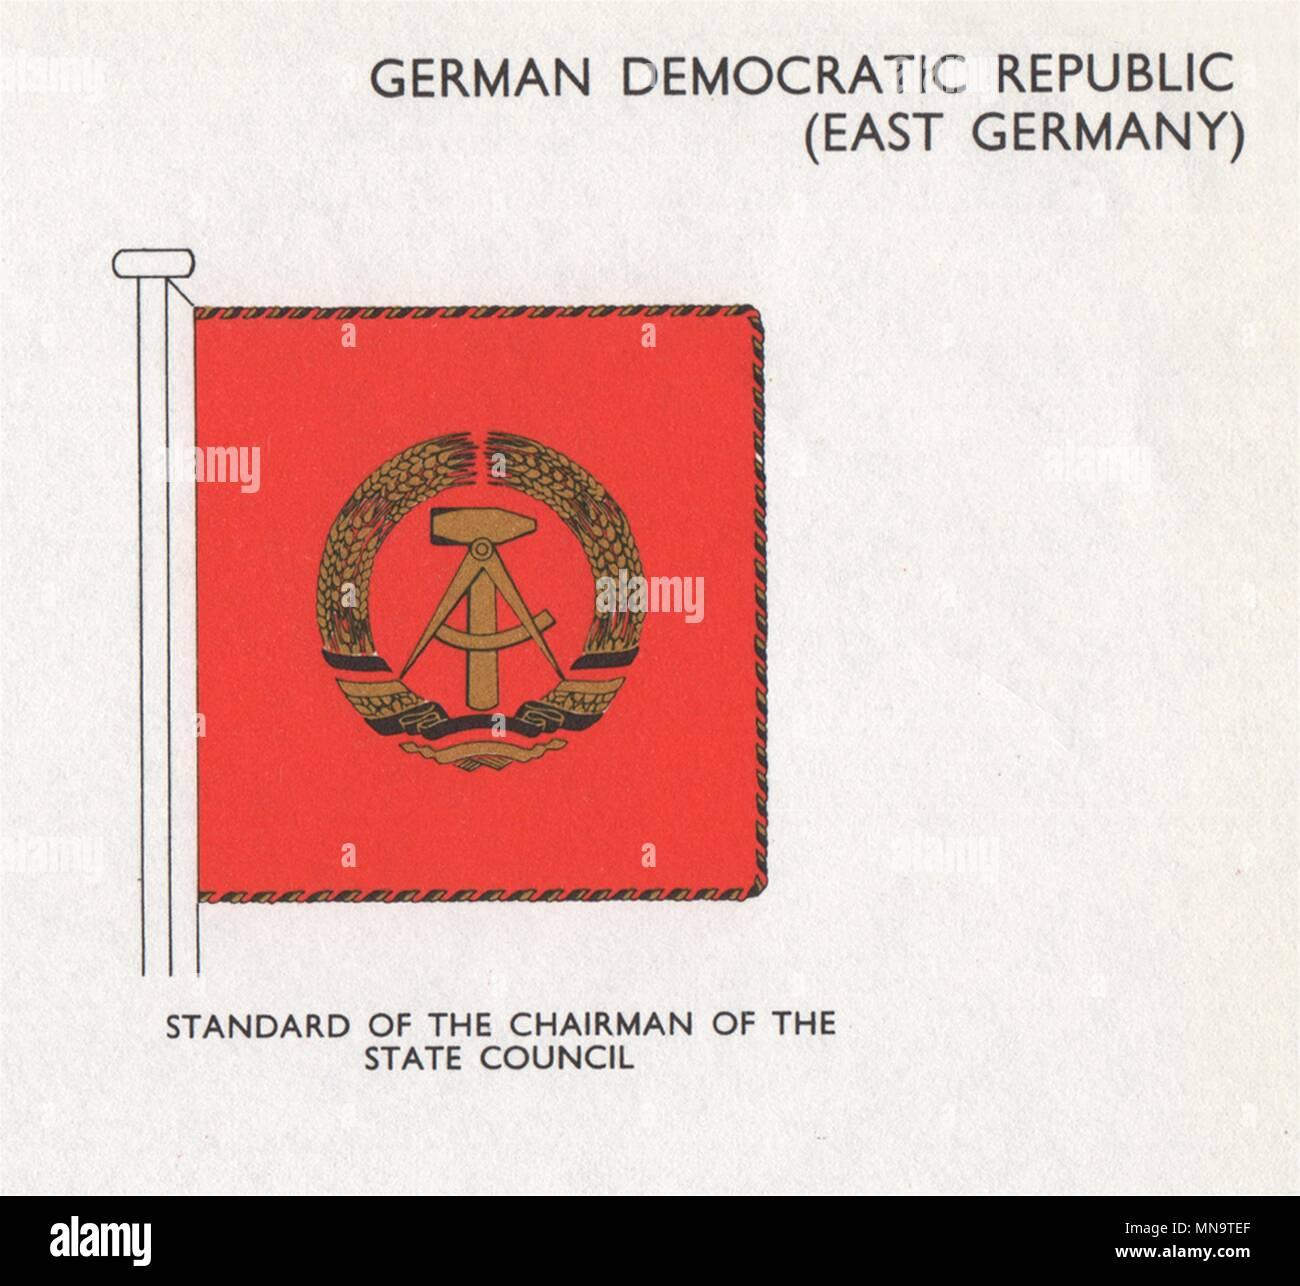 GDR (EAST GERMANY) FLAGS  Standard of the Chairman of the